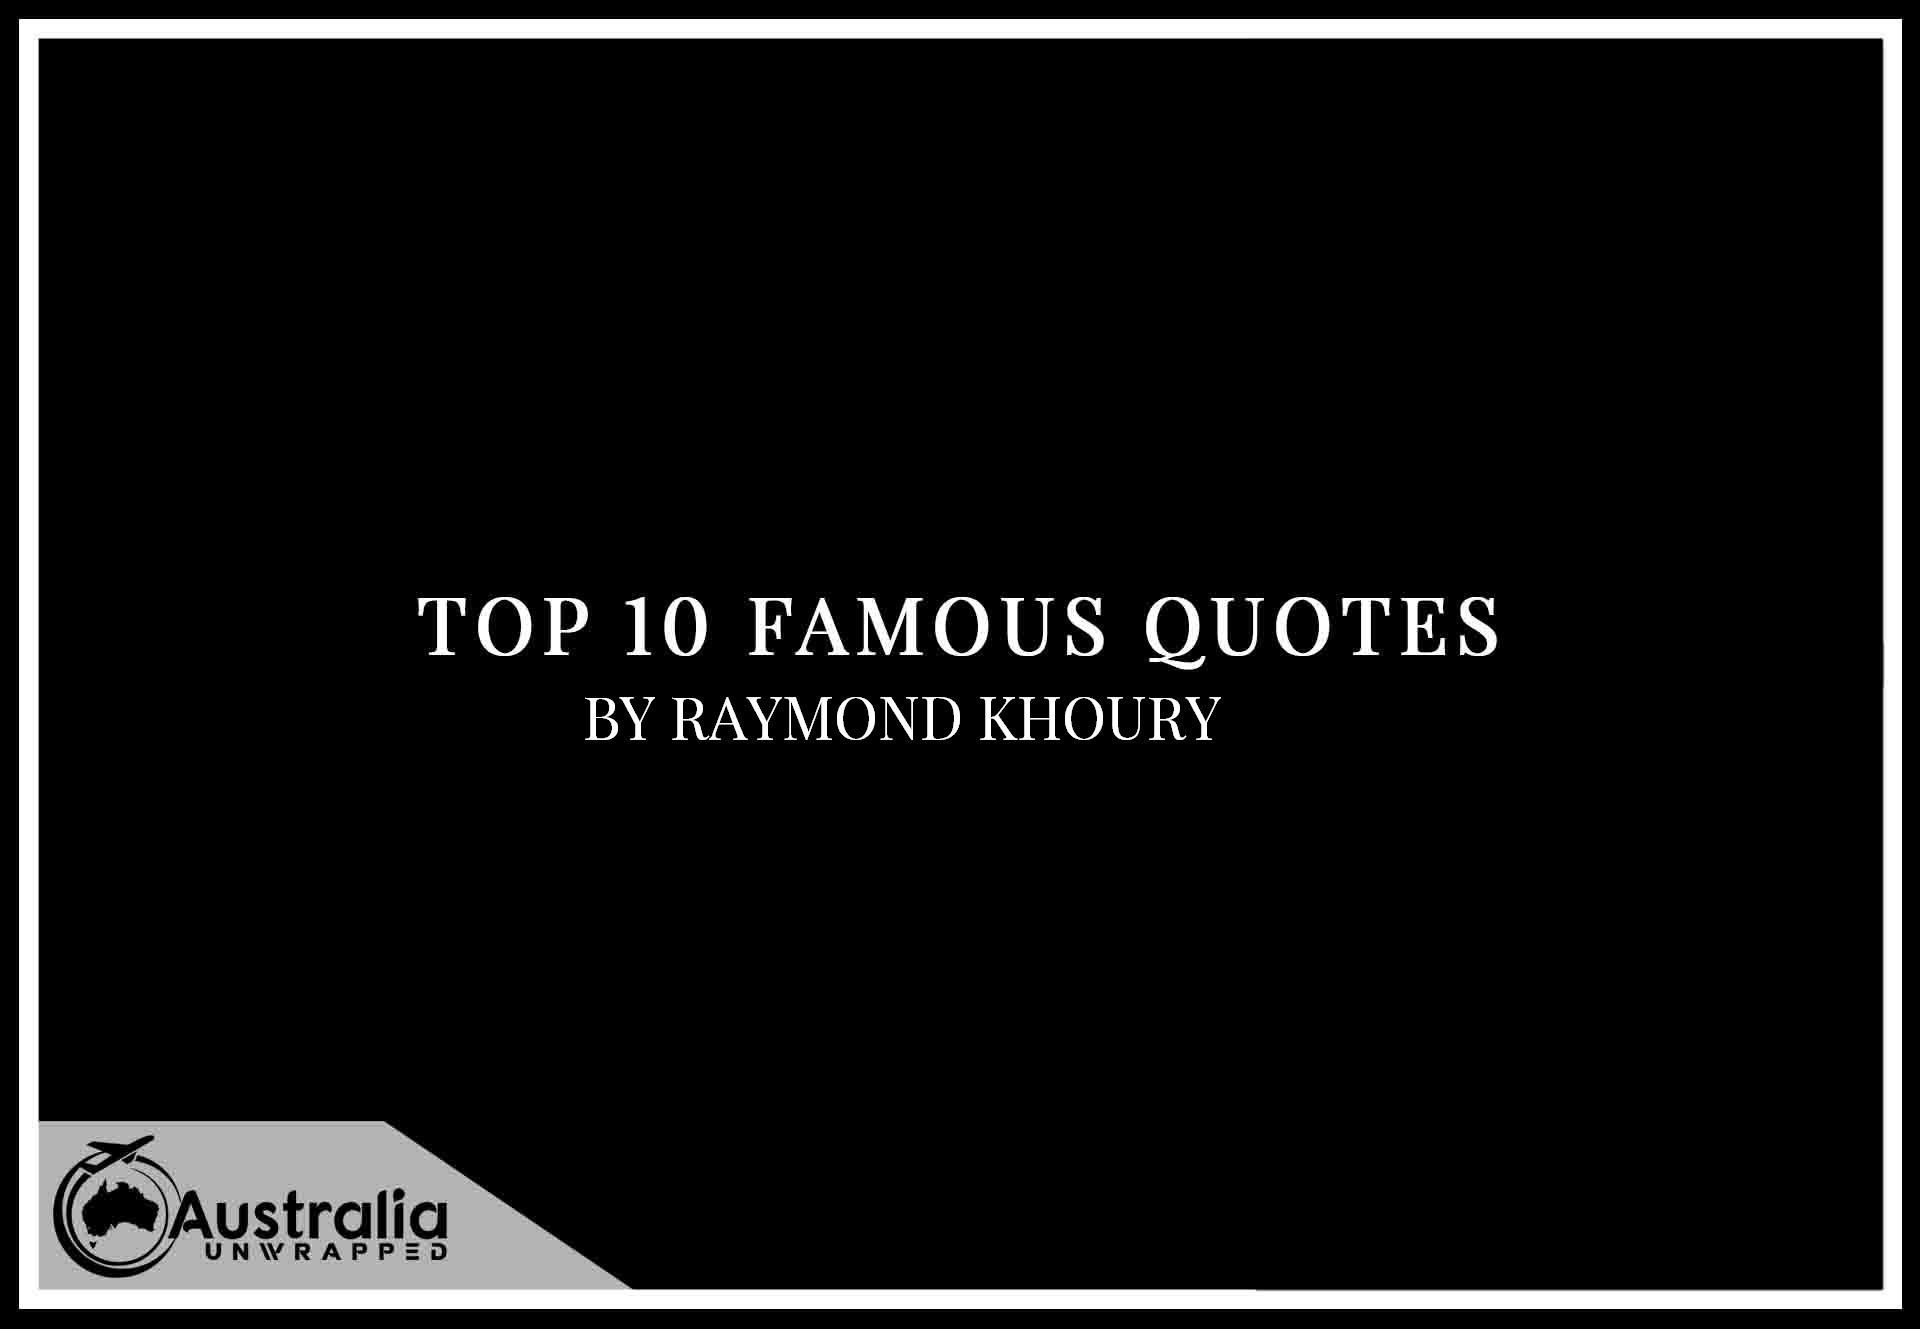 Top 10 Famous Quotes by Author Raymond Khoury